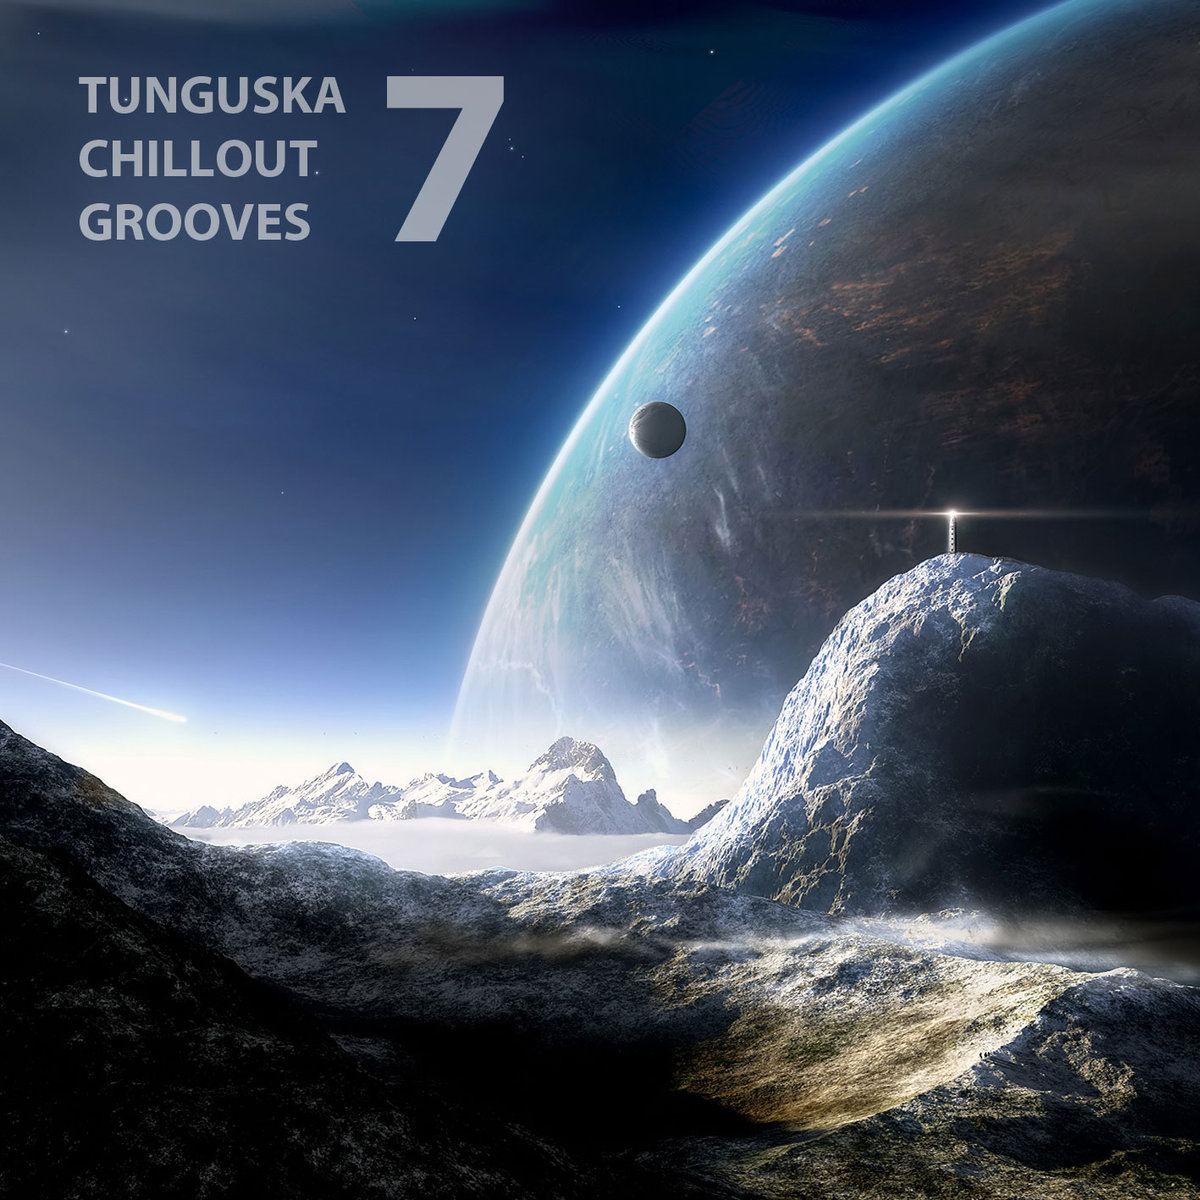 Pianochocolate - Forest @ 'Tunguska Chillout Grooves - Volume 7' album (electronic, ambient)